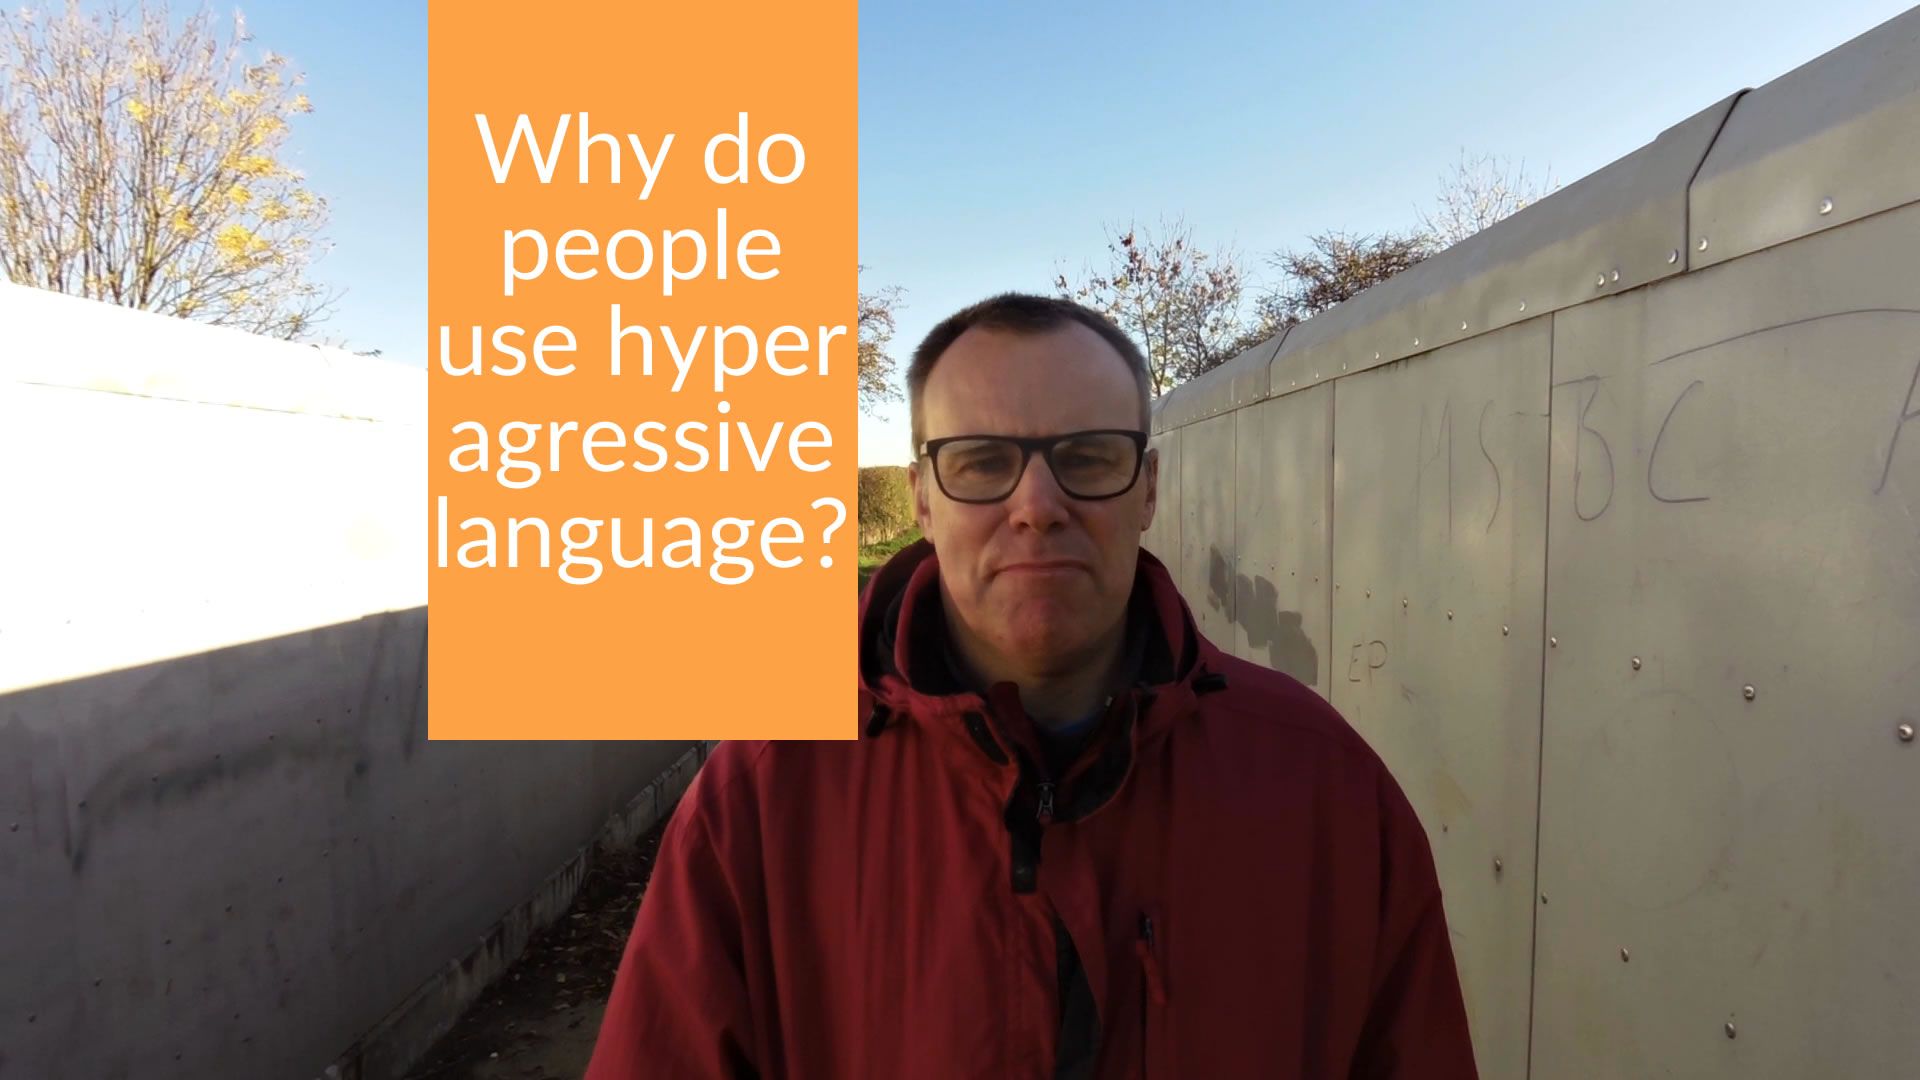 Why do people use hyper agressive language?